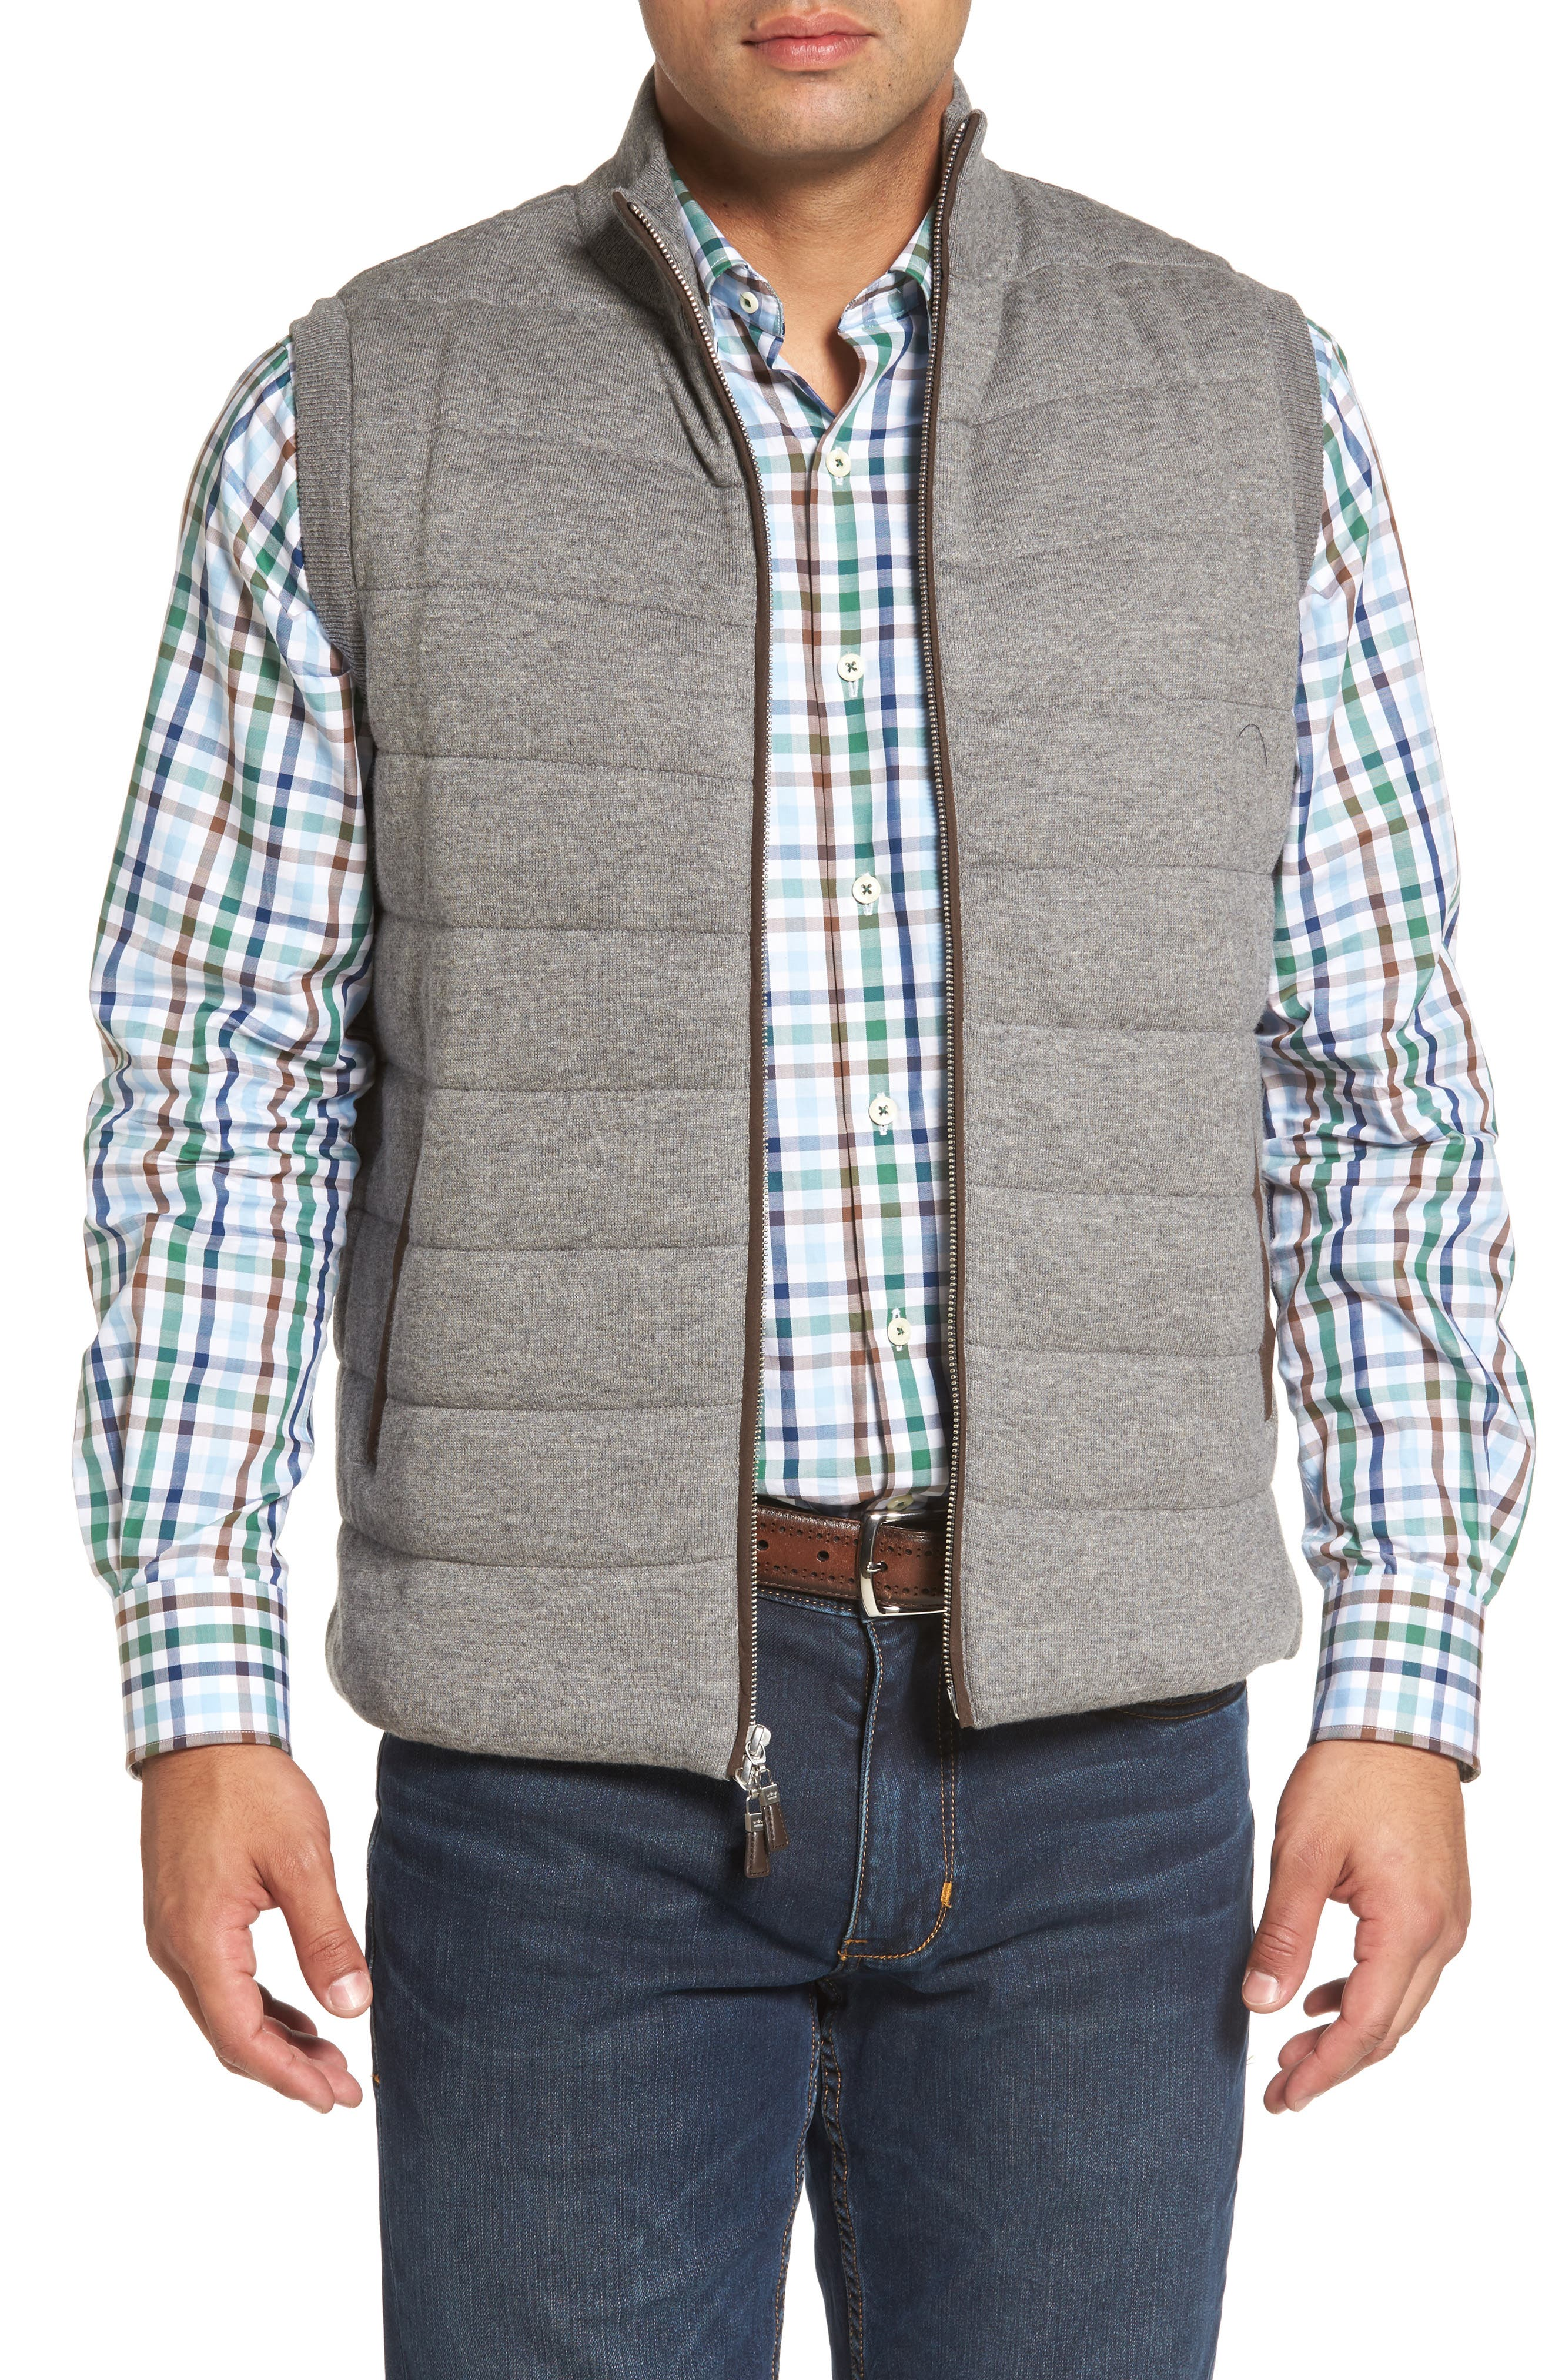 Main Image - Peter Millar Quilted Wool & Cotton Full Zip Vest